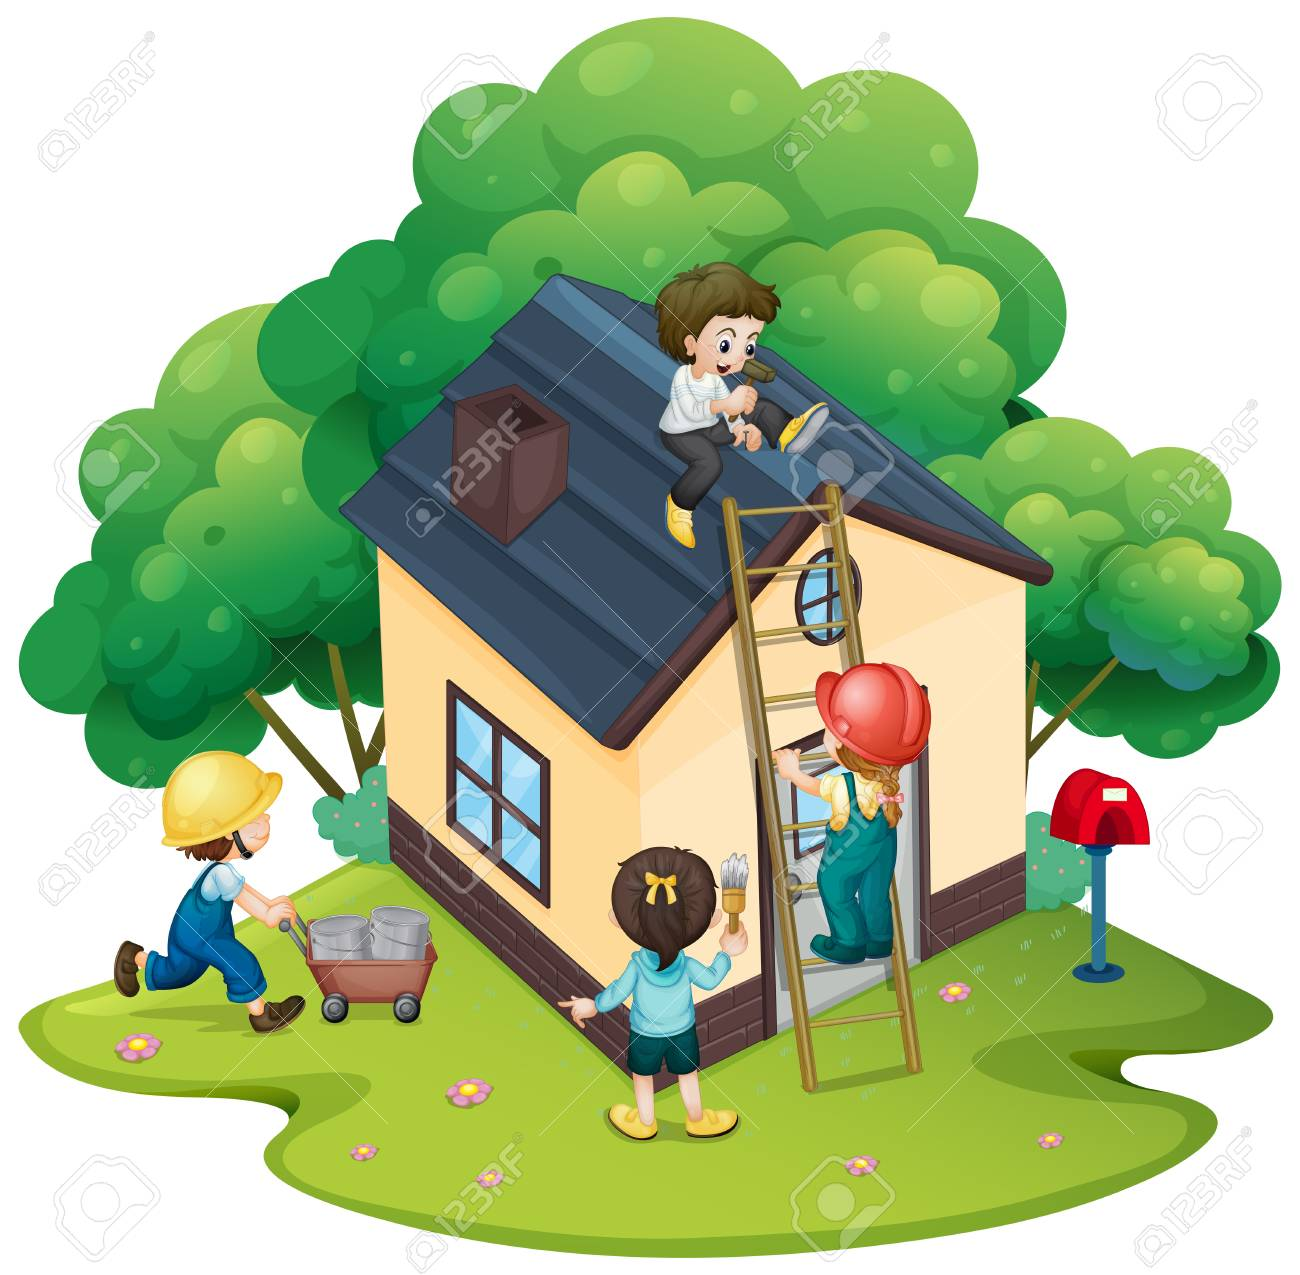 People building house together illustration.